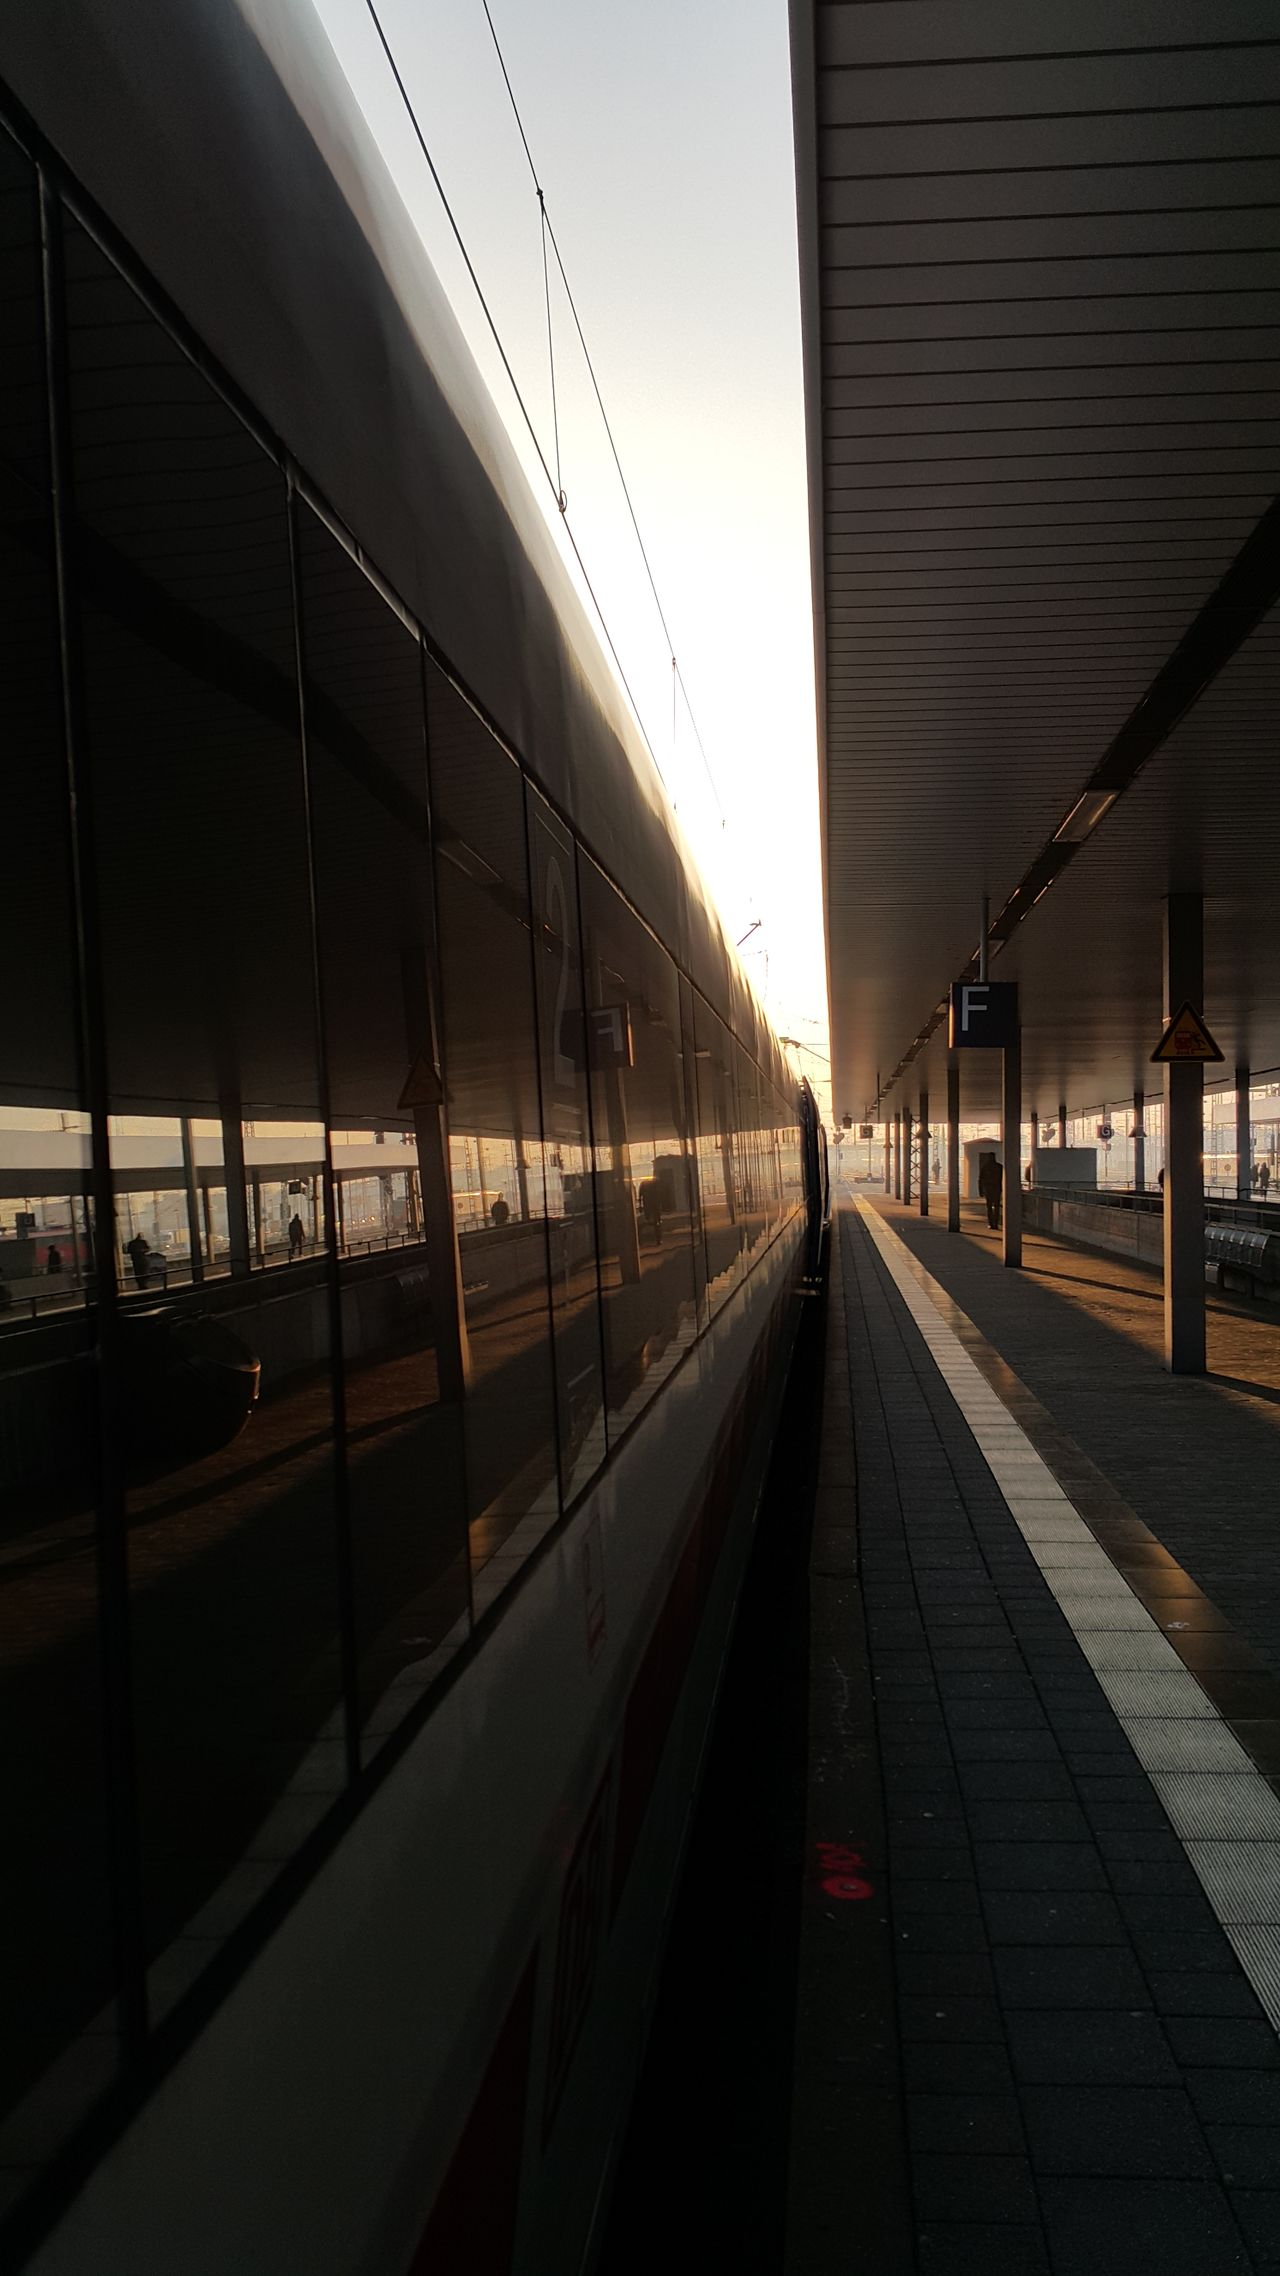 Built Structure Architecture Railroad Station The Way Forward Sunrise Train Train Station ıce On My Way On My Way To Work Morning Morning Light Mannheim City Day Transportation Public Transportation Train - Vehicle Railroad Station Platform